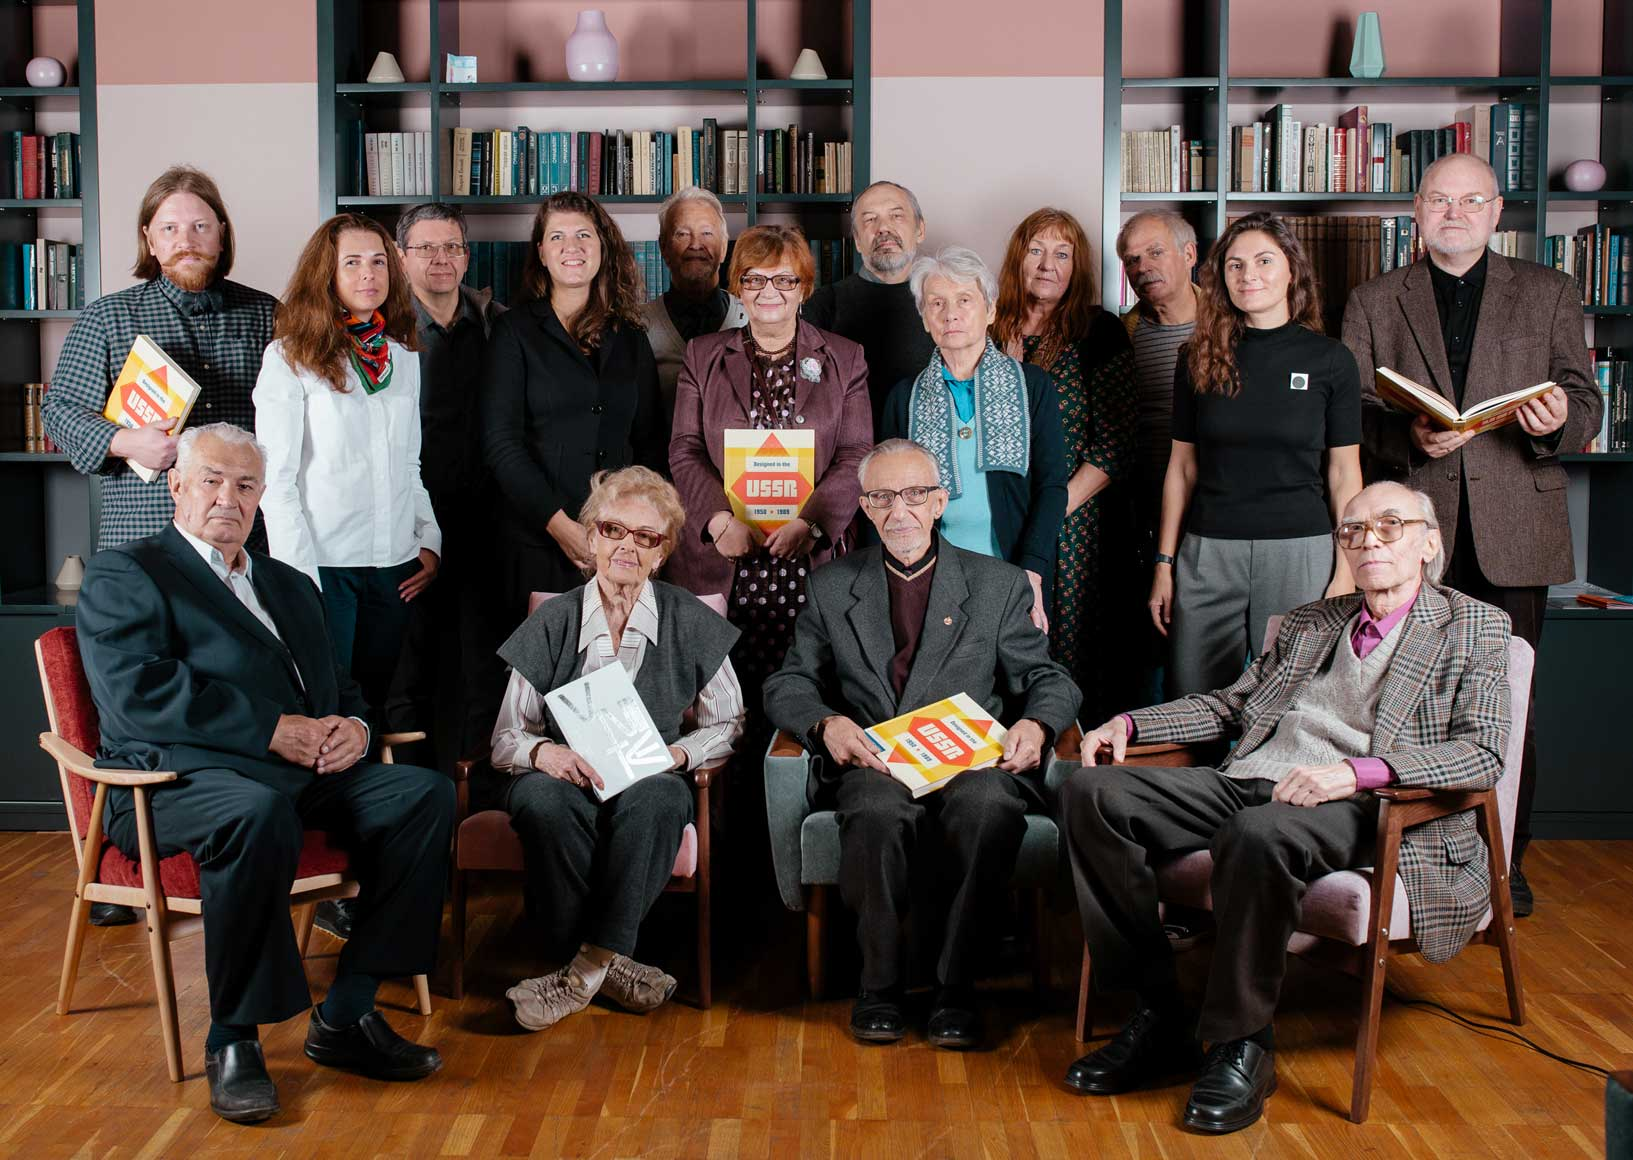 Some of the designers featured in Designed in the USSR: 1950-1989 photographed at the Tretiakov Gallery in Moscow last month. Sitting, from left to right: Oleg Kostenko, Irina Kostenko, Vladimir Runge, Alexander Grashin; Standing, front, left to right: Olga Druzhinina, Alexandra Sankova, (unknown), Marina Timofeeva, Sveta Chirkova; Standing, back, left to right: Stepan Lukyanov, Alexander Lavrentyev, (unknown), Alexey Kolotushkin, (unknown), (unknown), Igor Lisenko